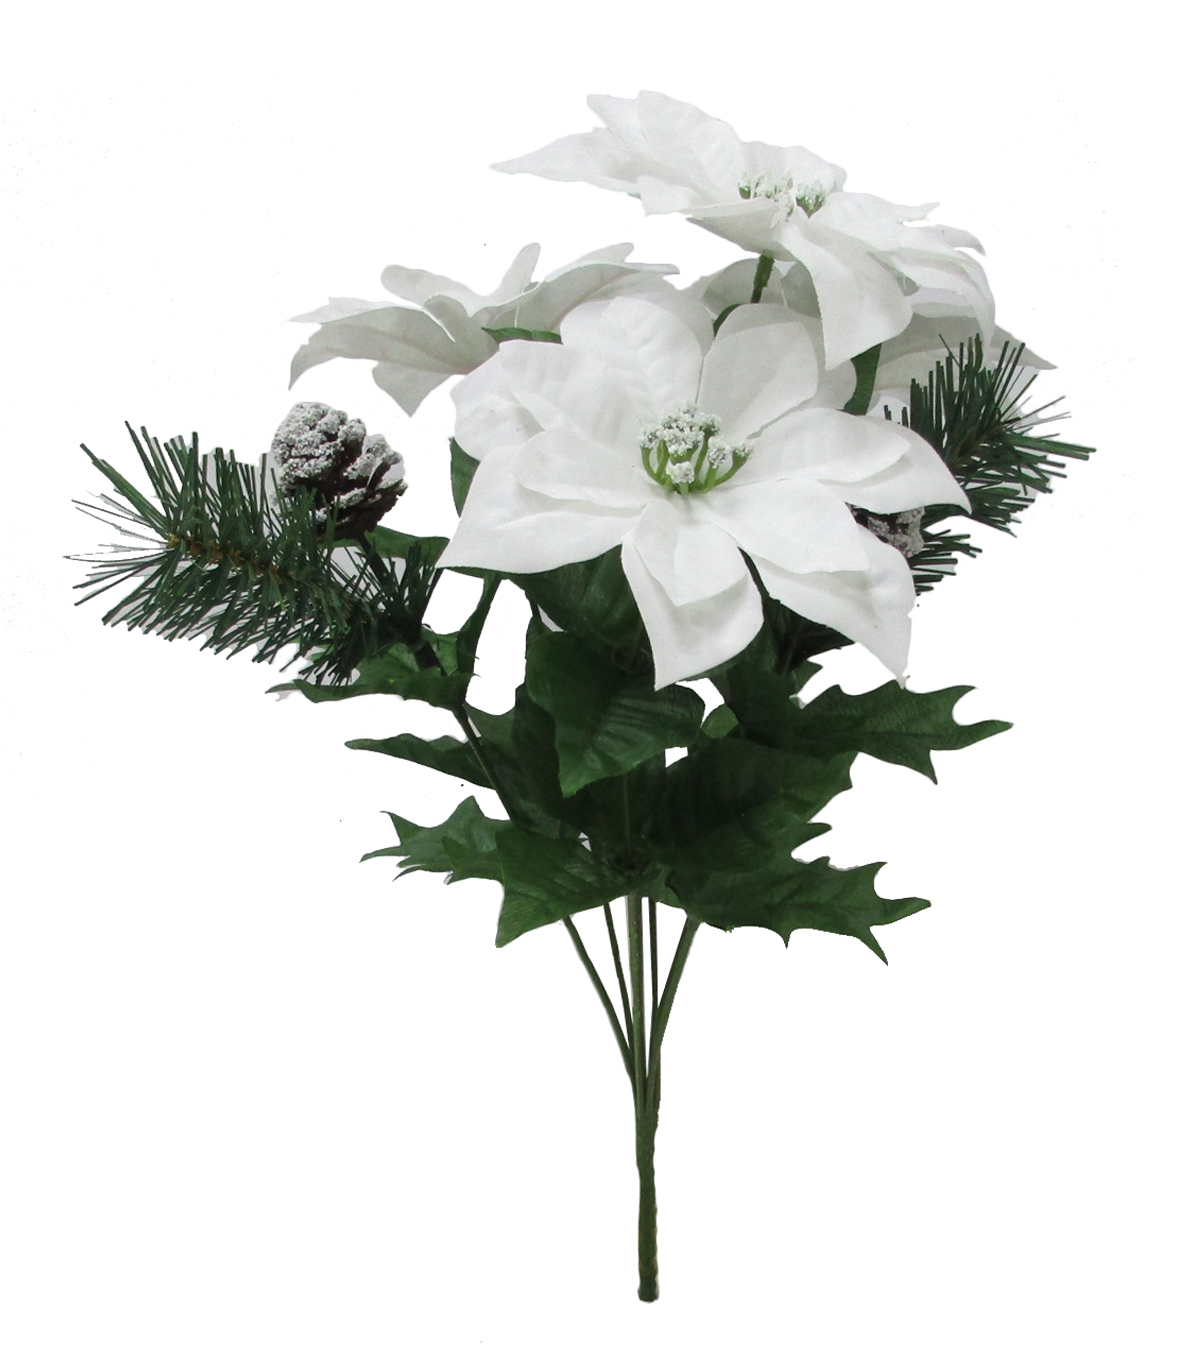 Blooming Holiday Poinsettia & Pine Mixed Bush-White